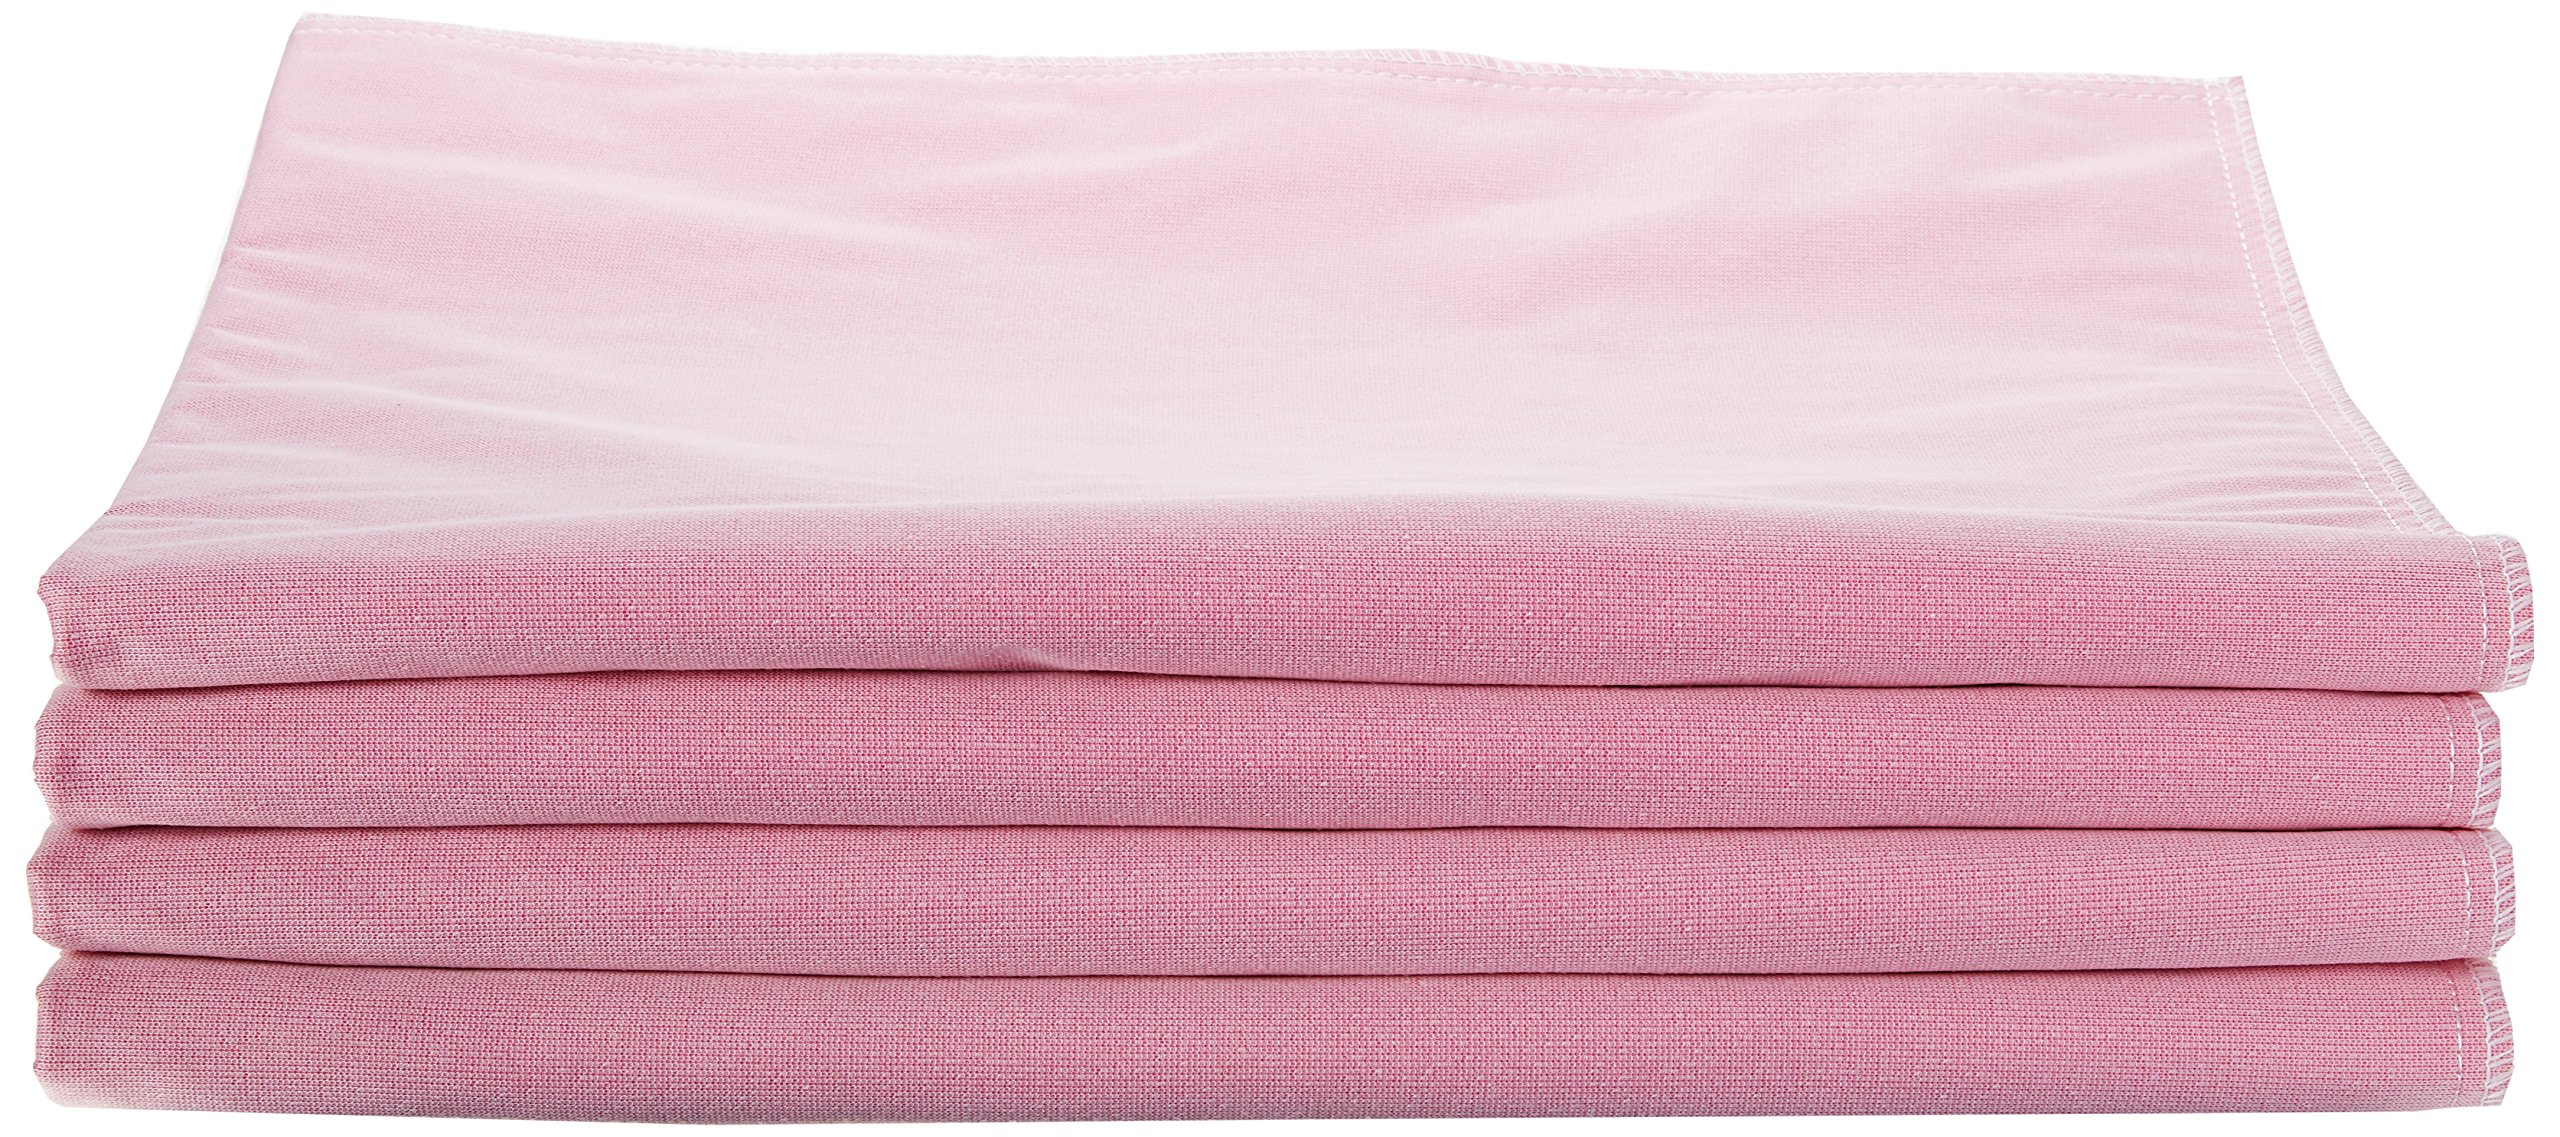 "Medline Sofnit 300, Pack of 4 Large Washable Pink Underpads, 34""x36"" for use with incontinence, reusable pet pads, reusable bed pads, great for dogs, cats, and bunny"